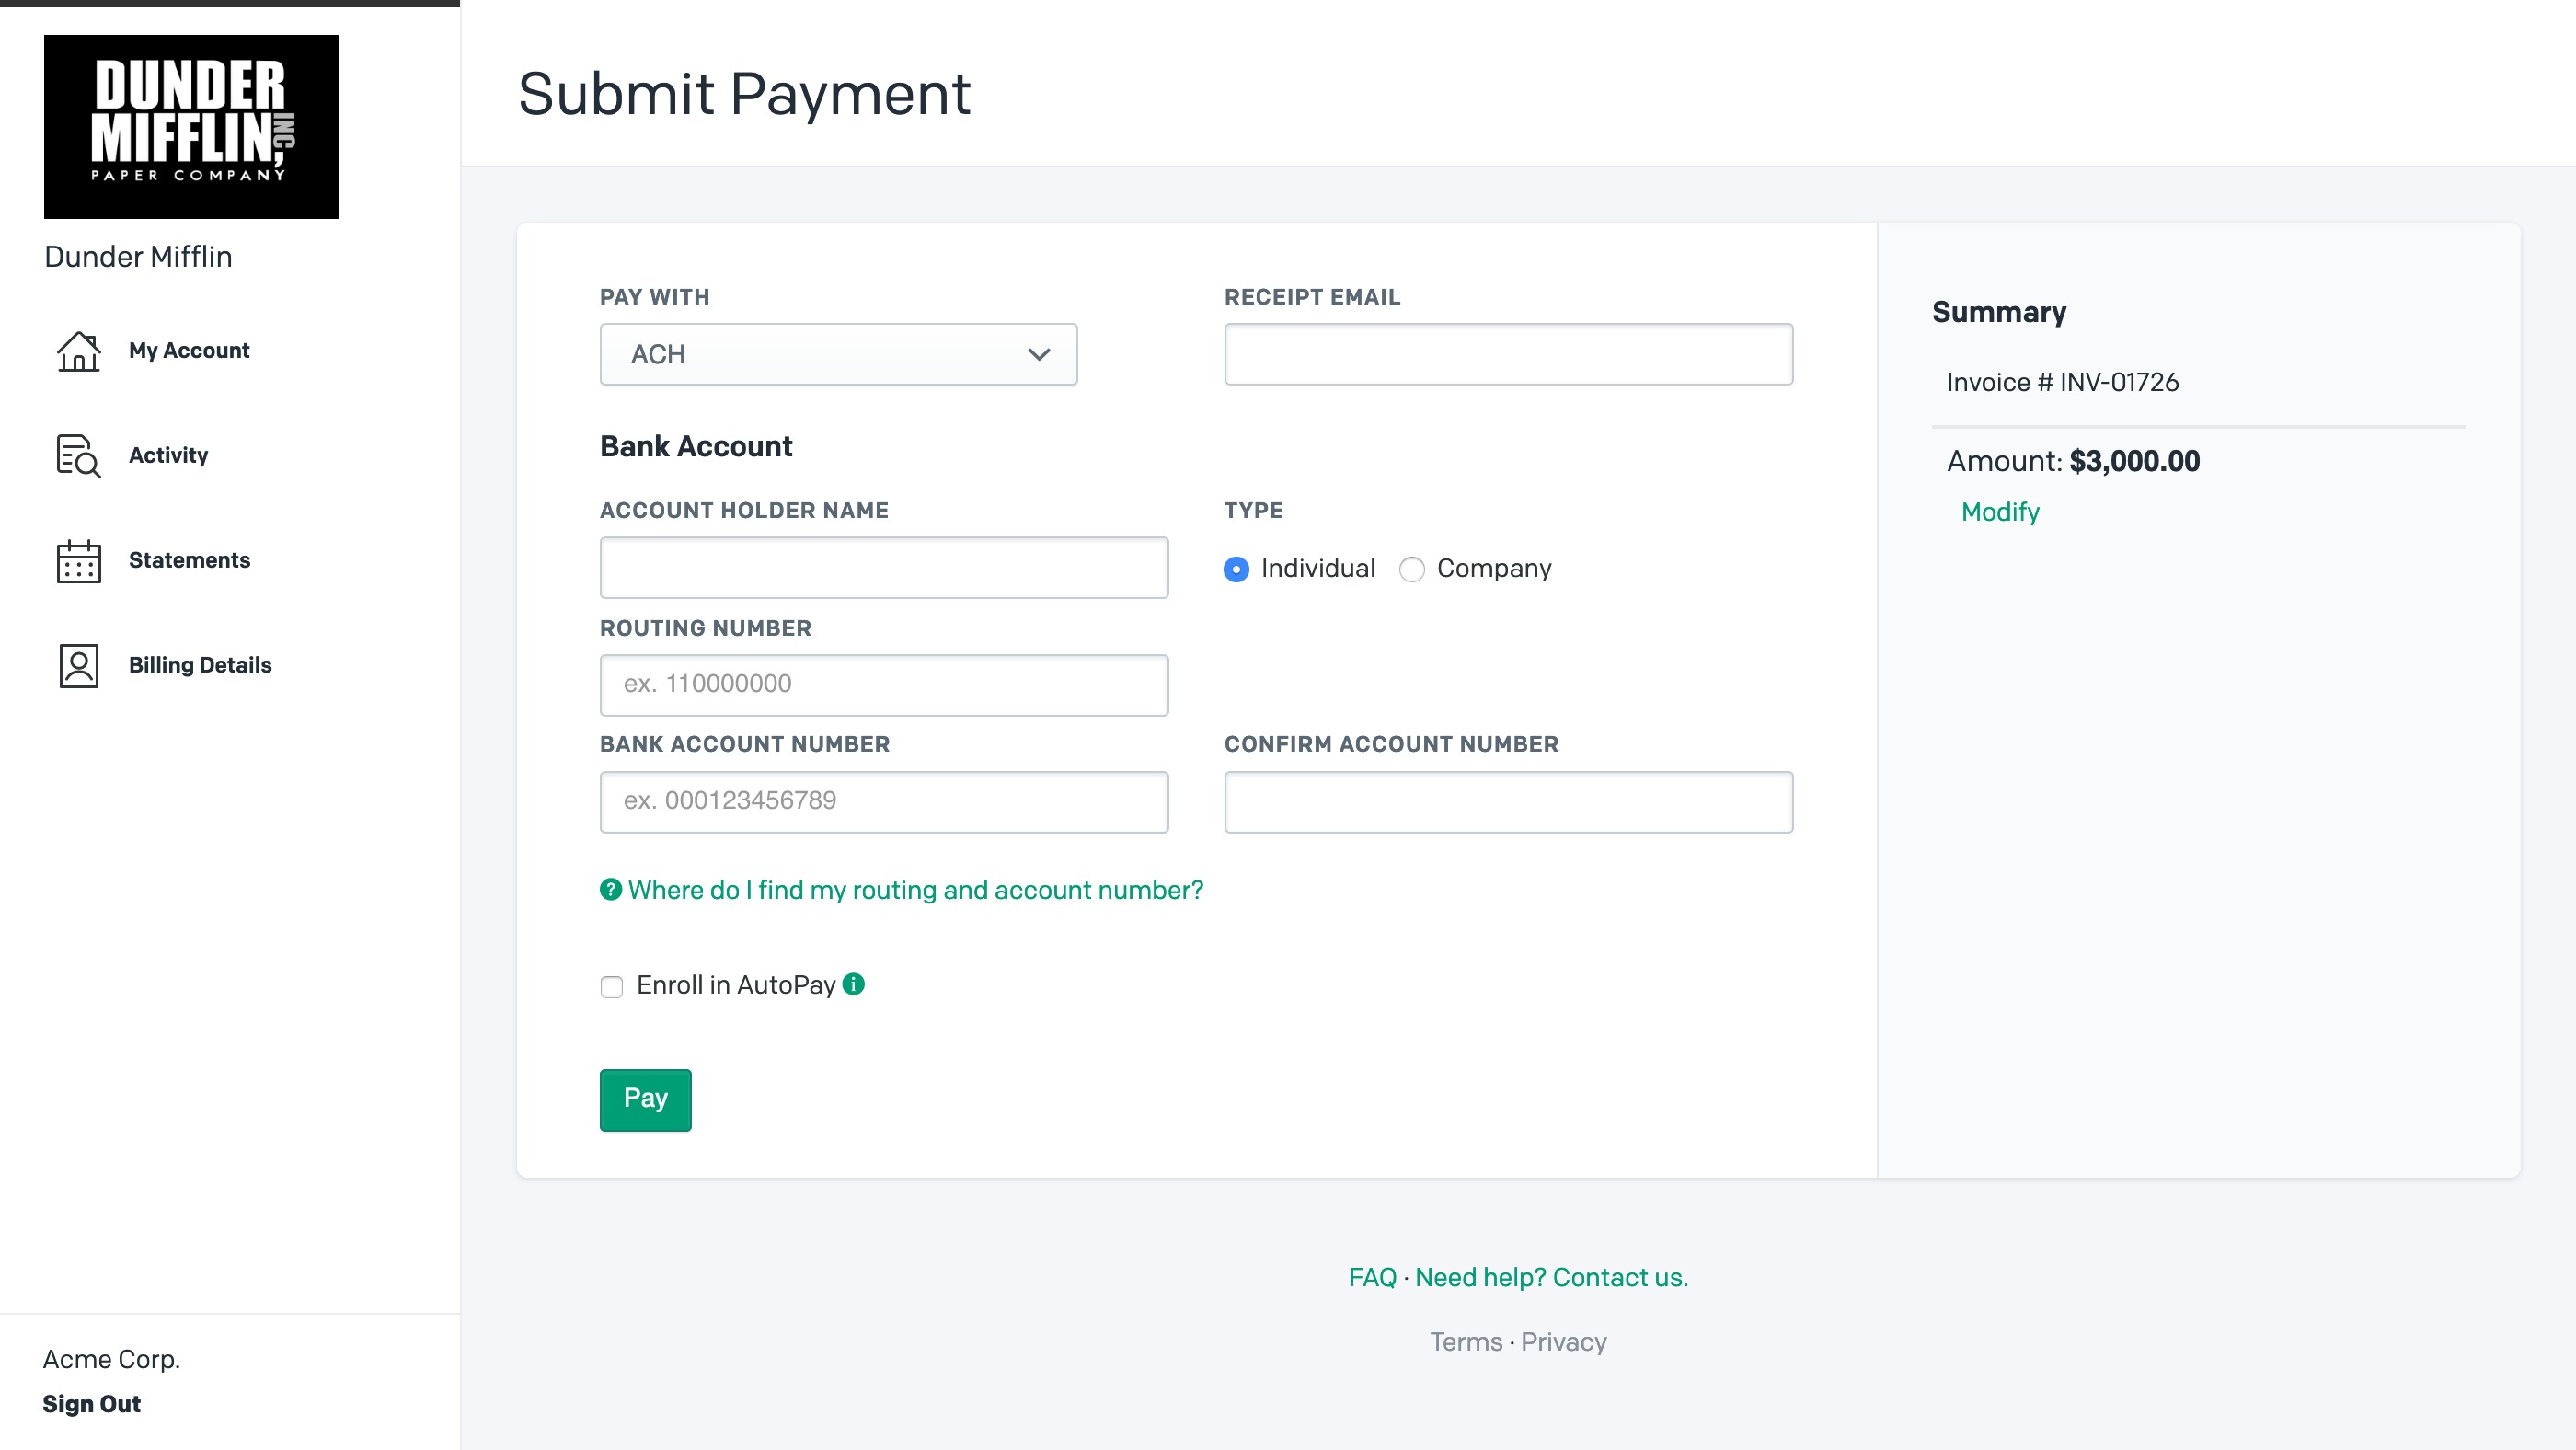 Pay Invoice with ACH